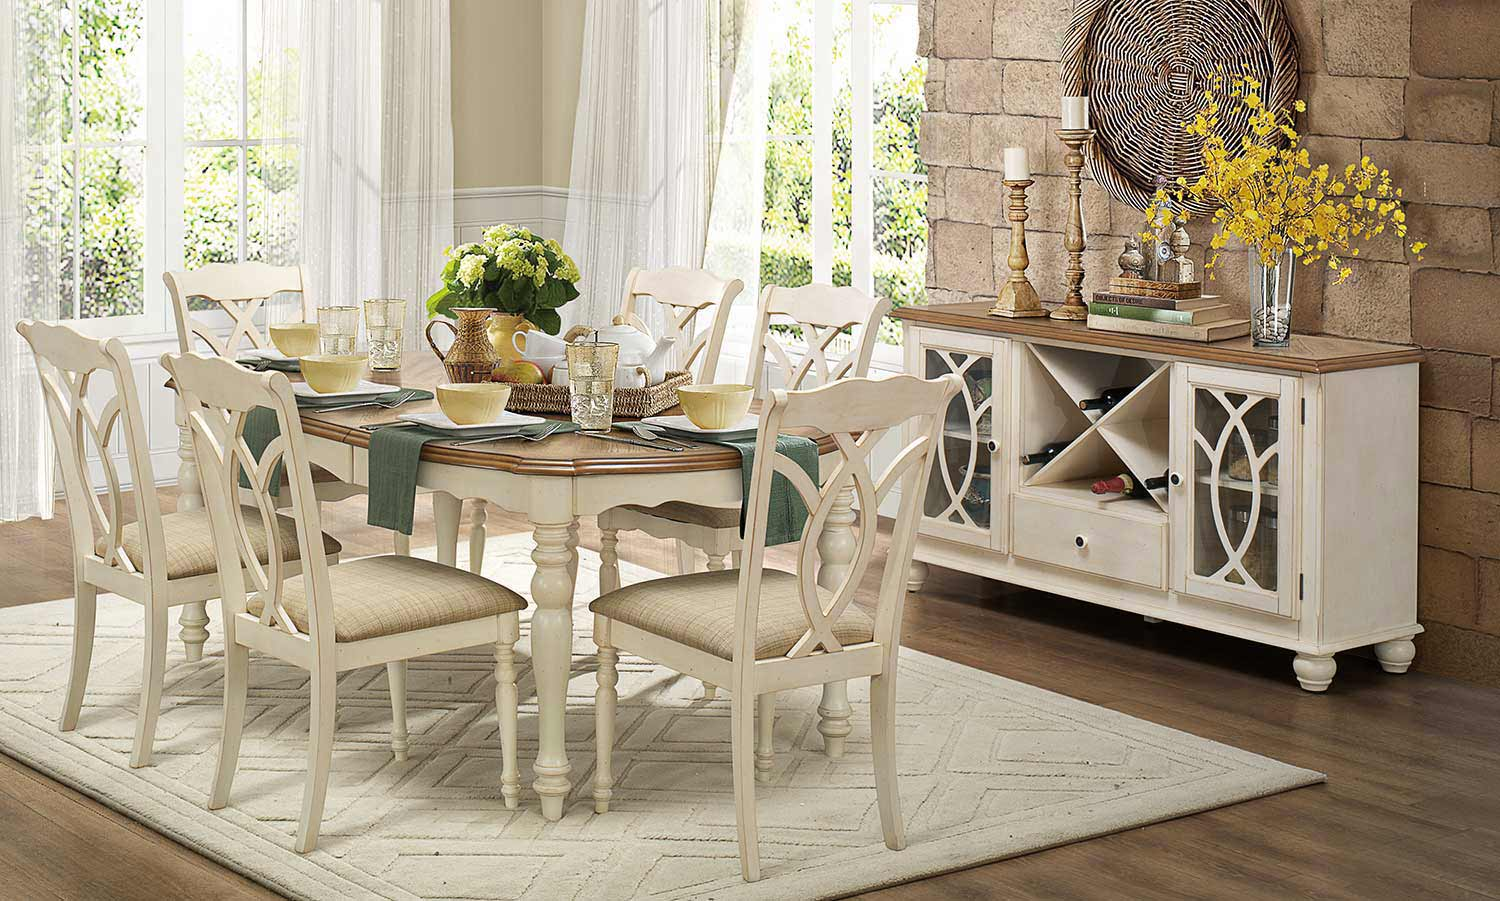 Homelegance azalea dining set antique white 5145 dining for White dining room table set